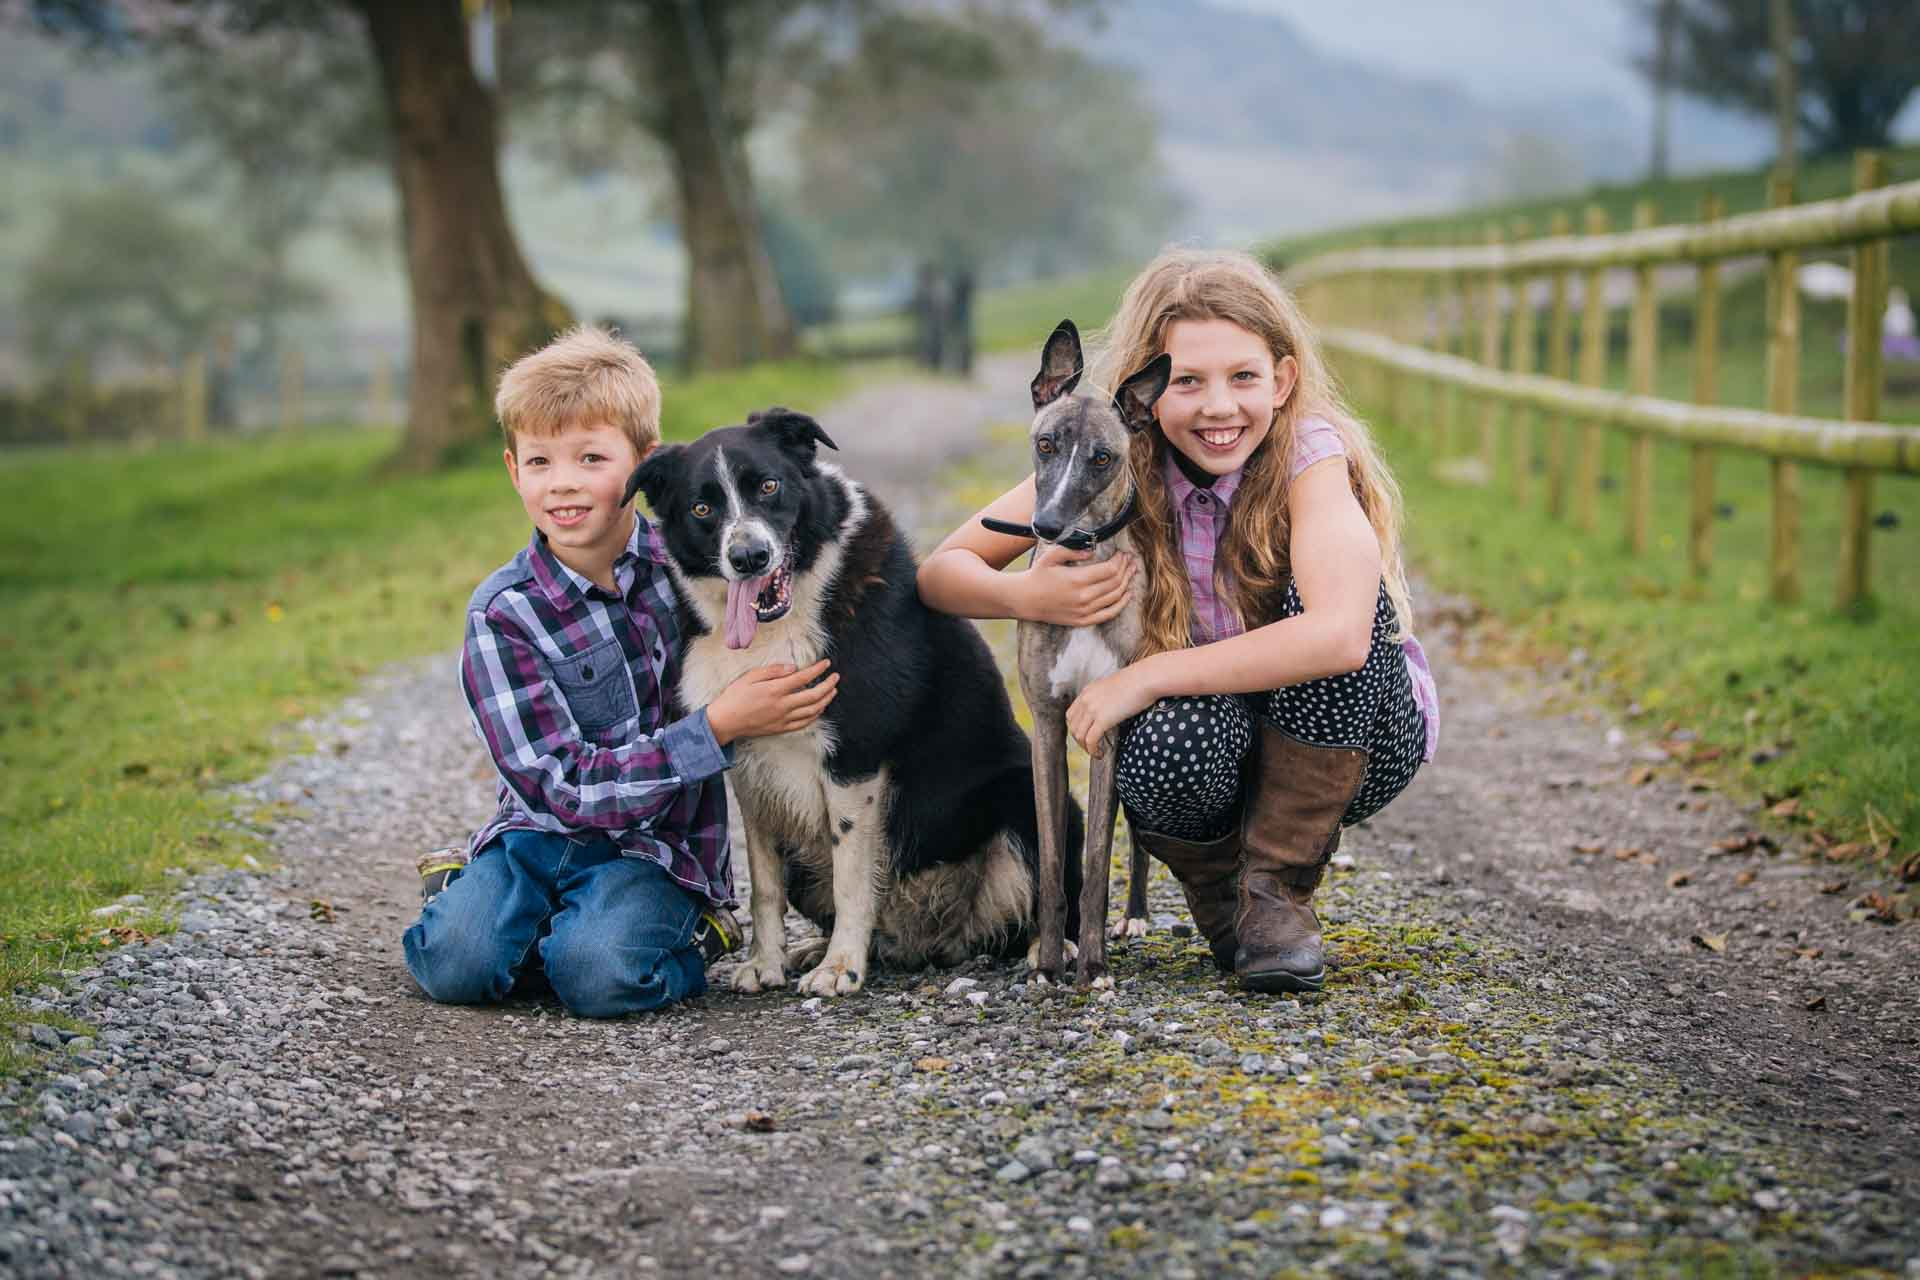 Family portraits with pets - Joanna Eardley Photography